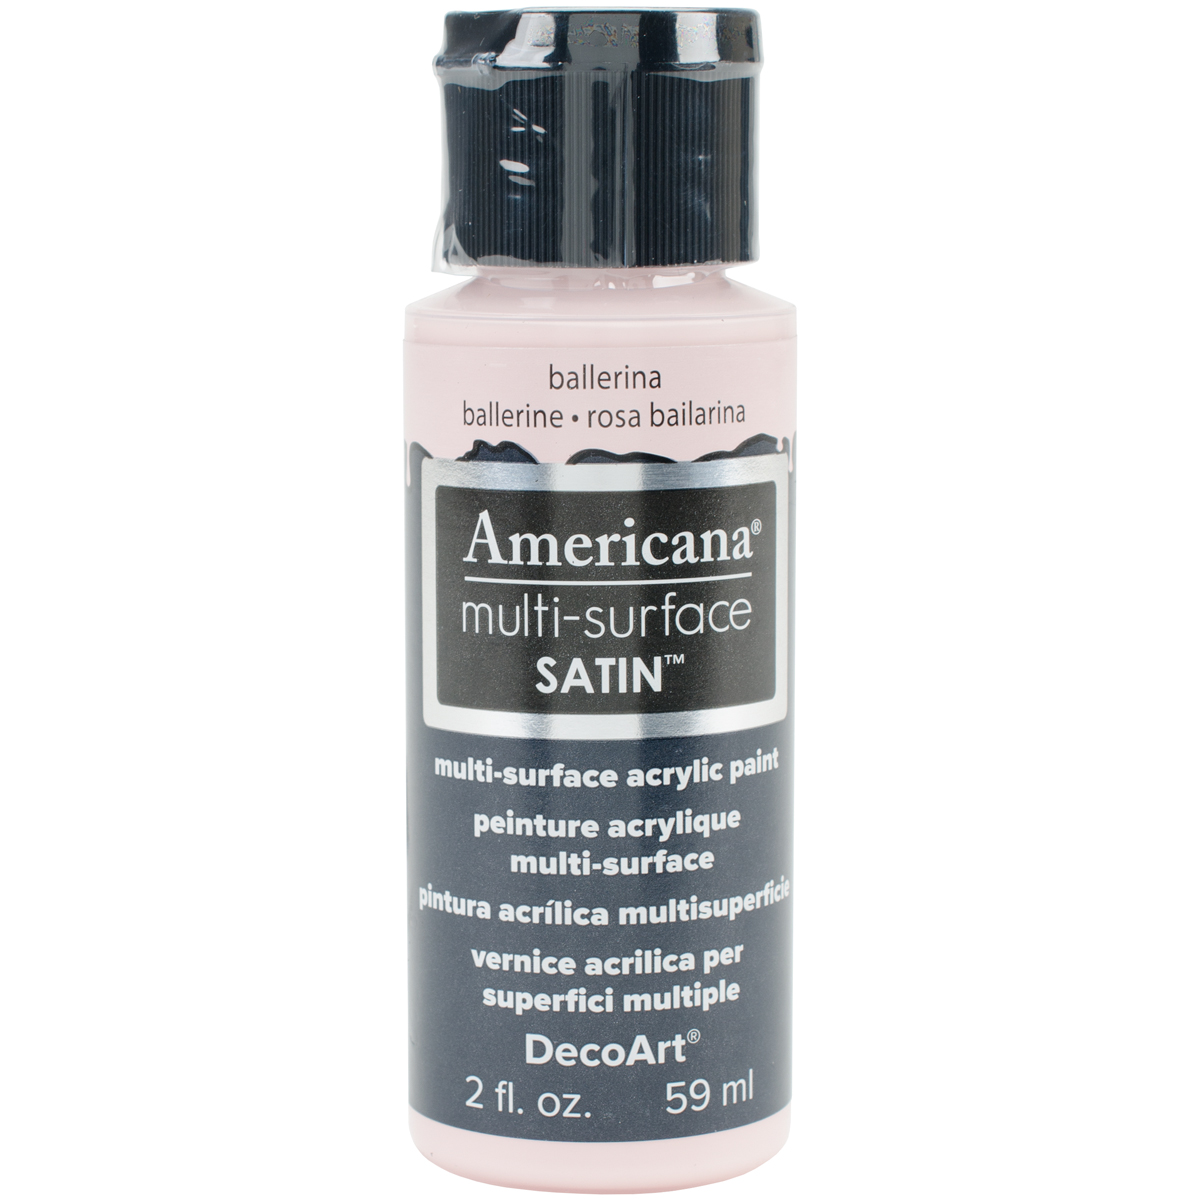 Americana Multi-Surface Satin Acrylic Paint 2oz-Ballerina